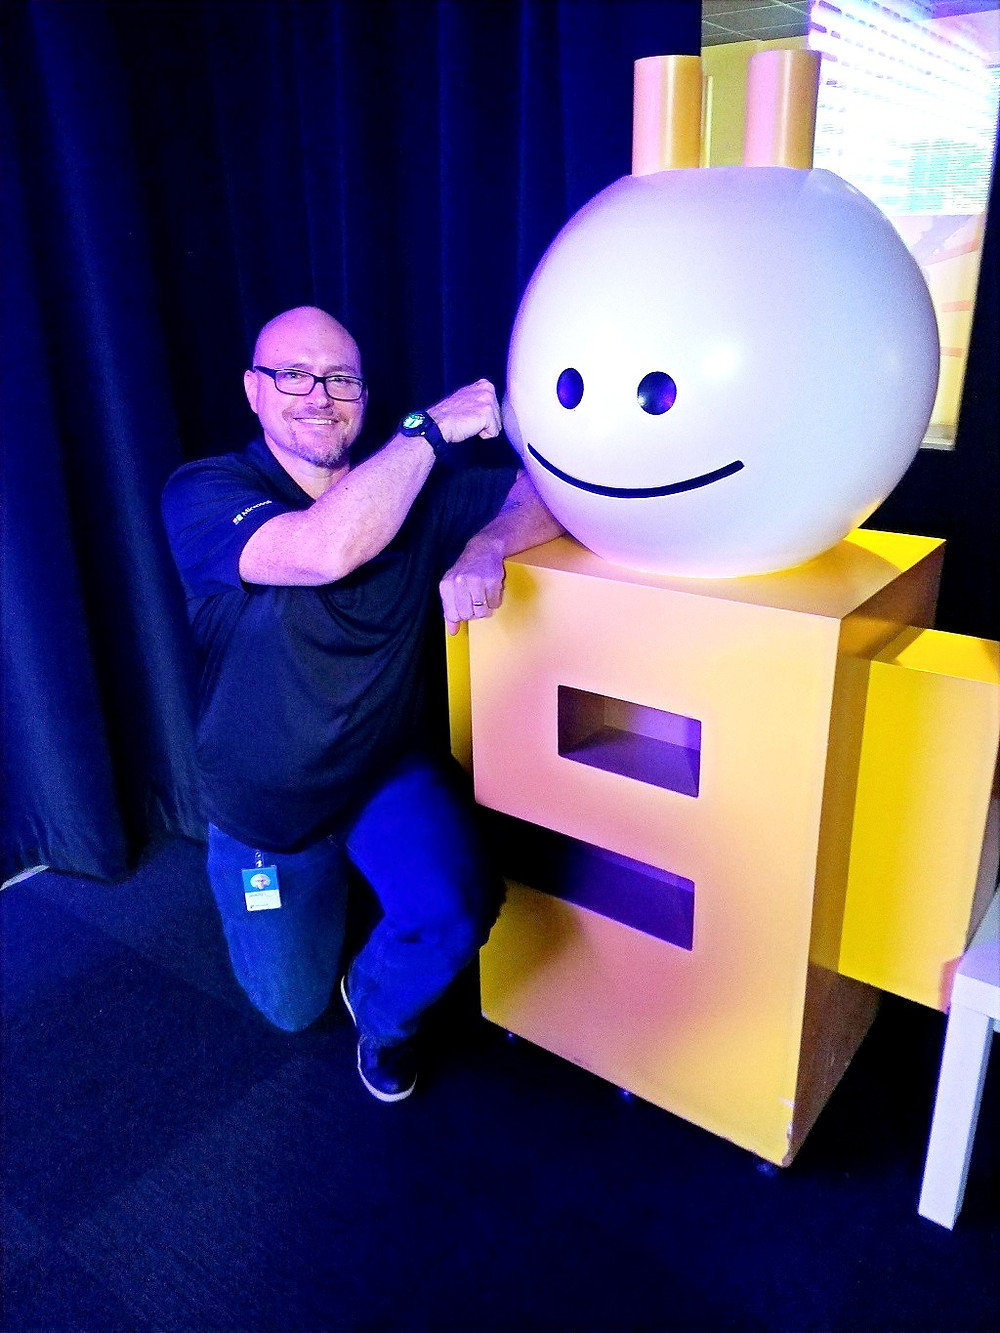 Jeremy next to the Channel 9 Mascot